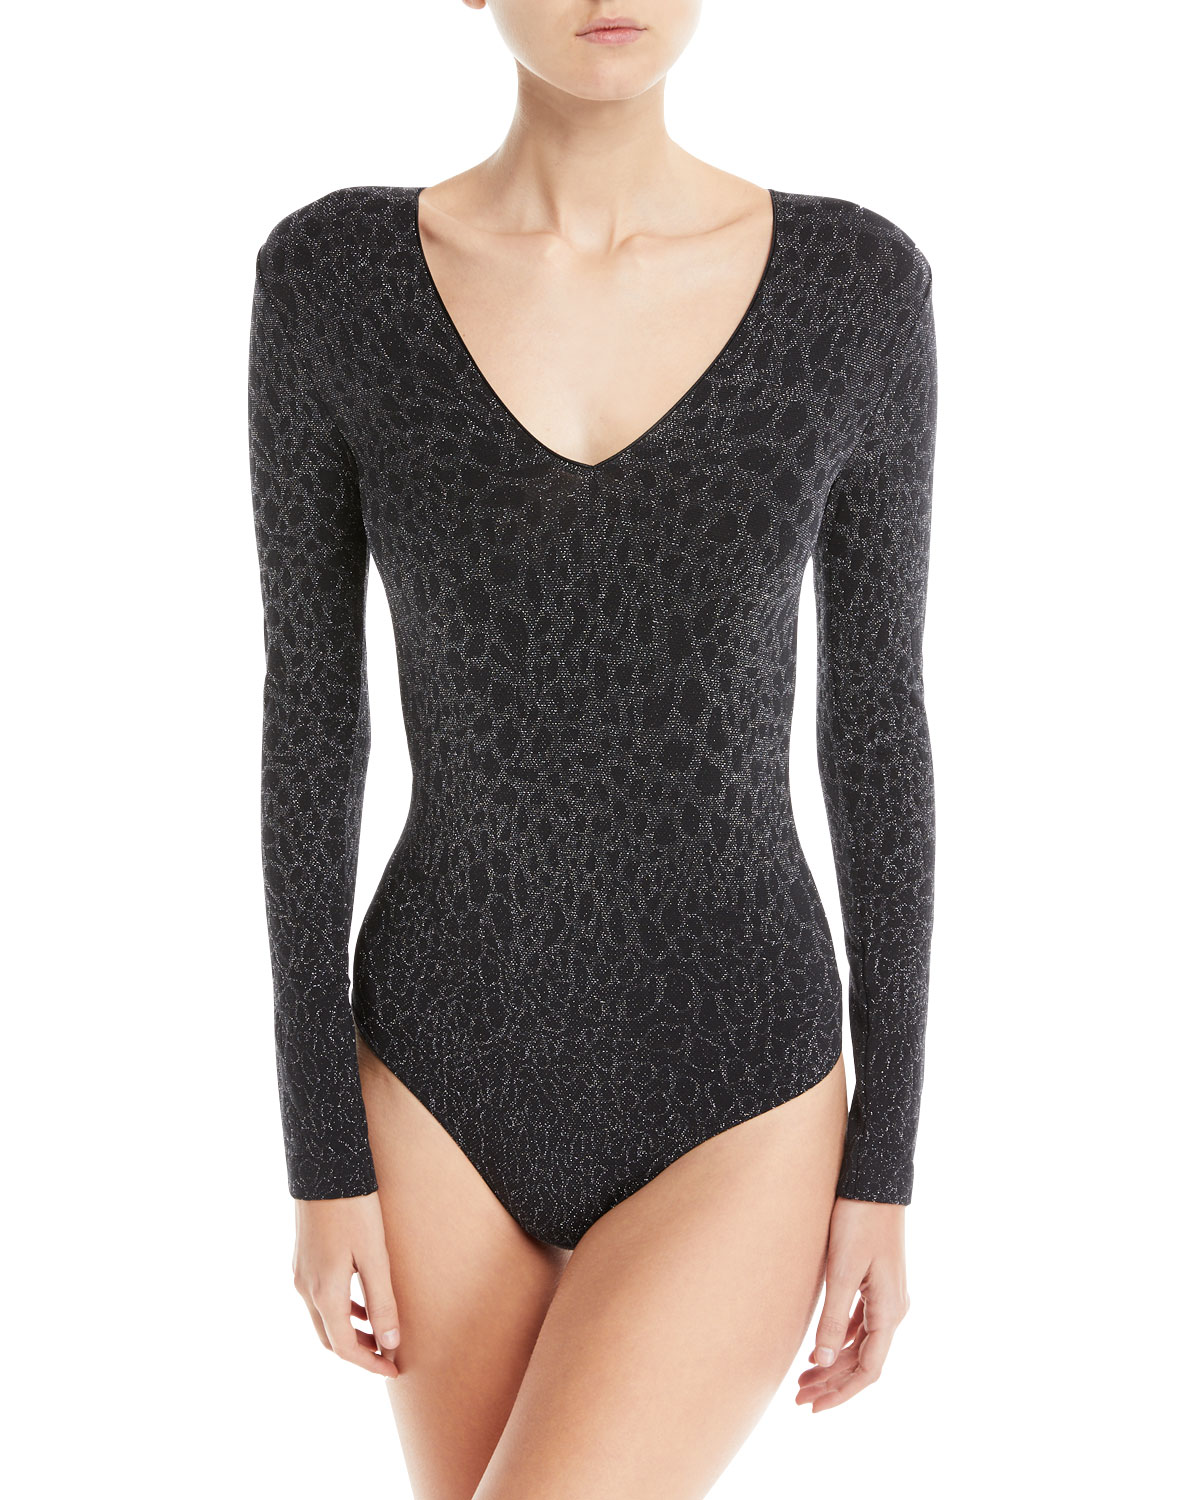 Metallic Animal-Print String Bodysuit